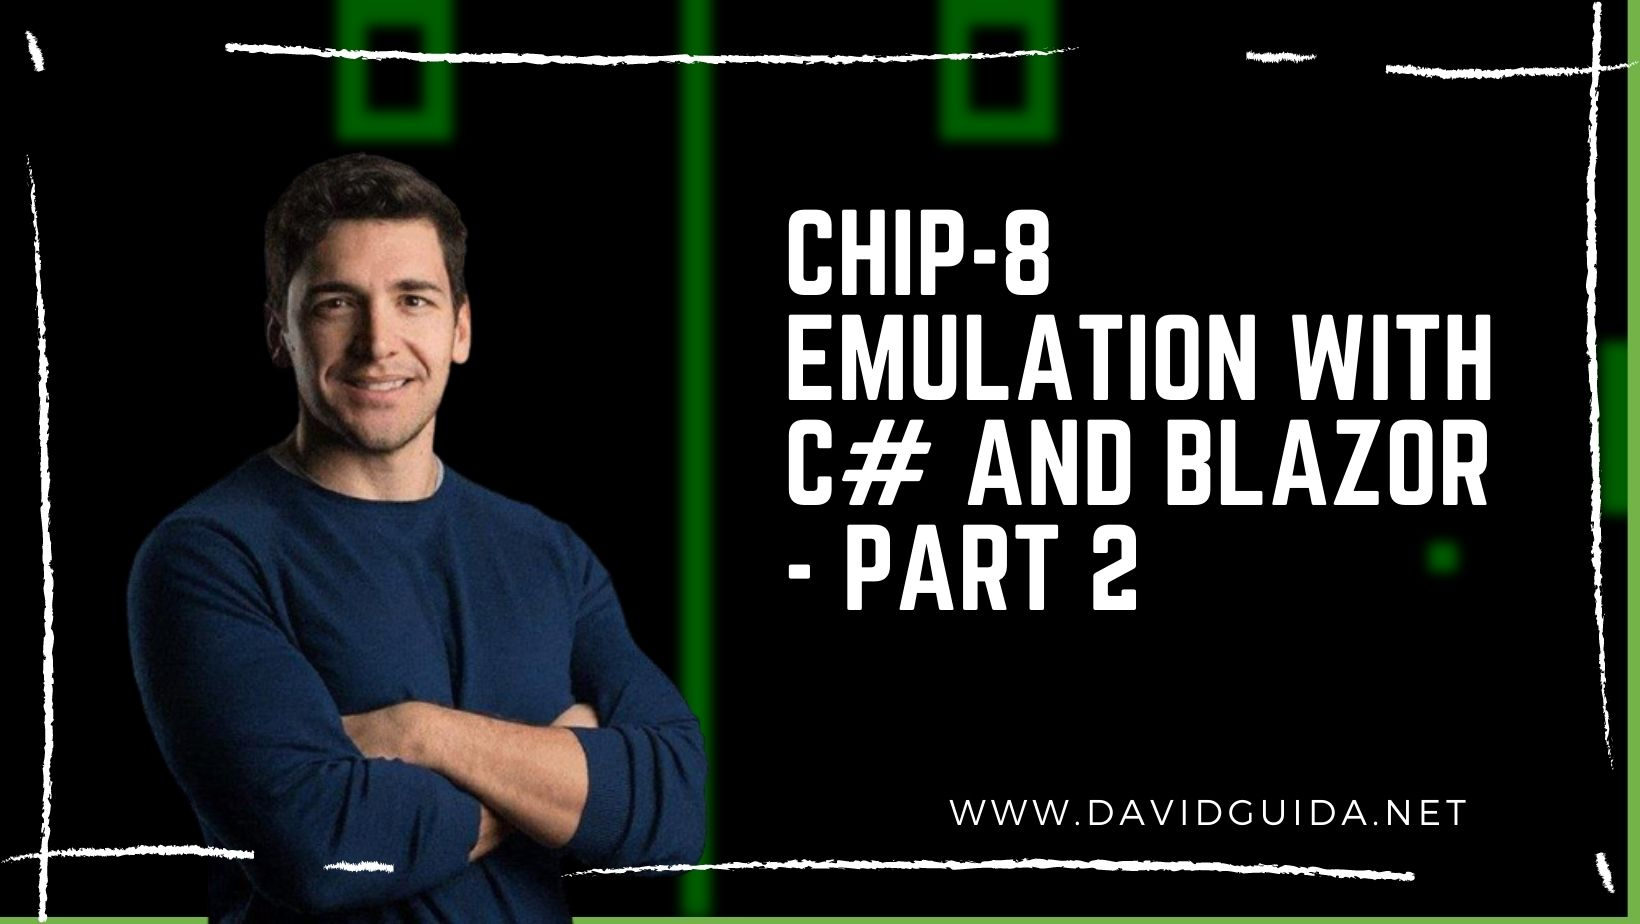 CHIP-8 emulation with C# and Blazor - part 2